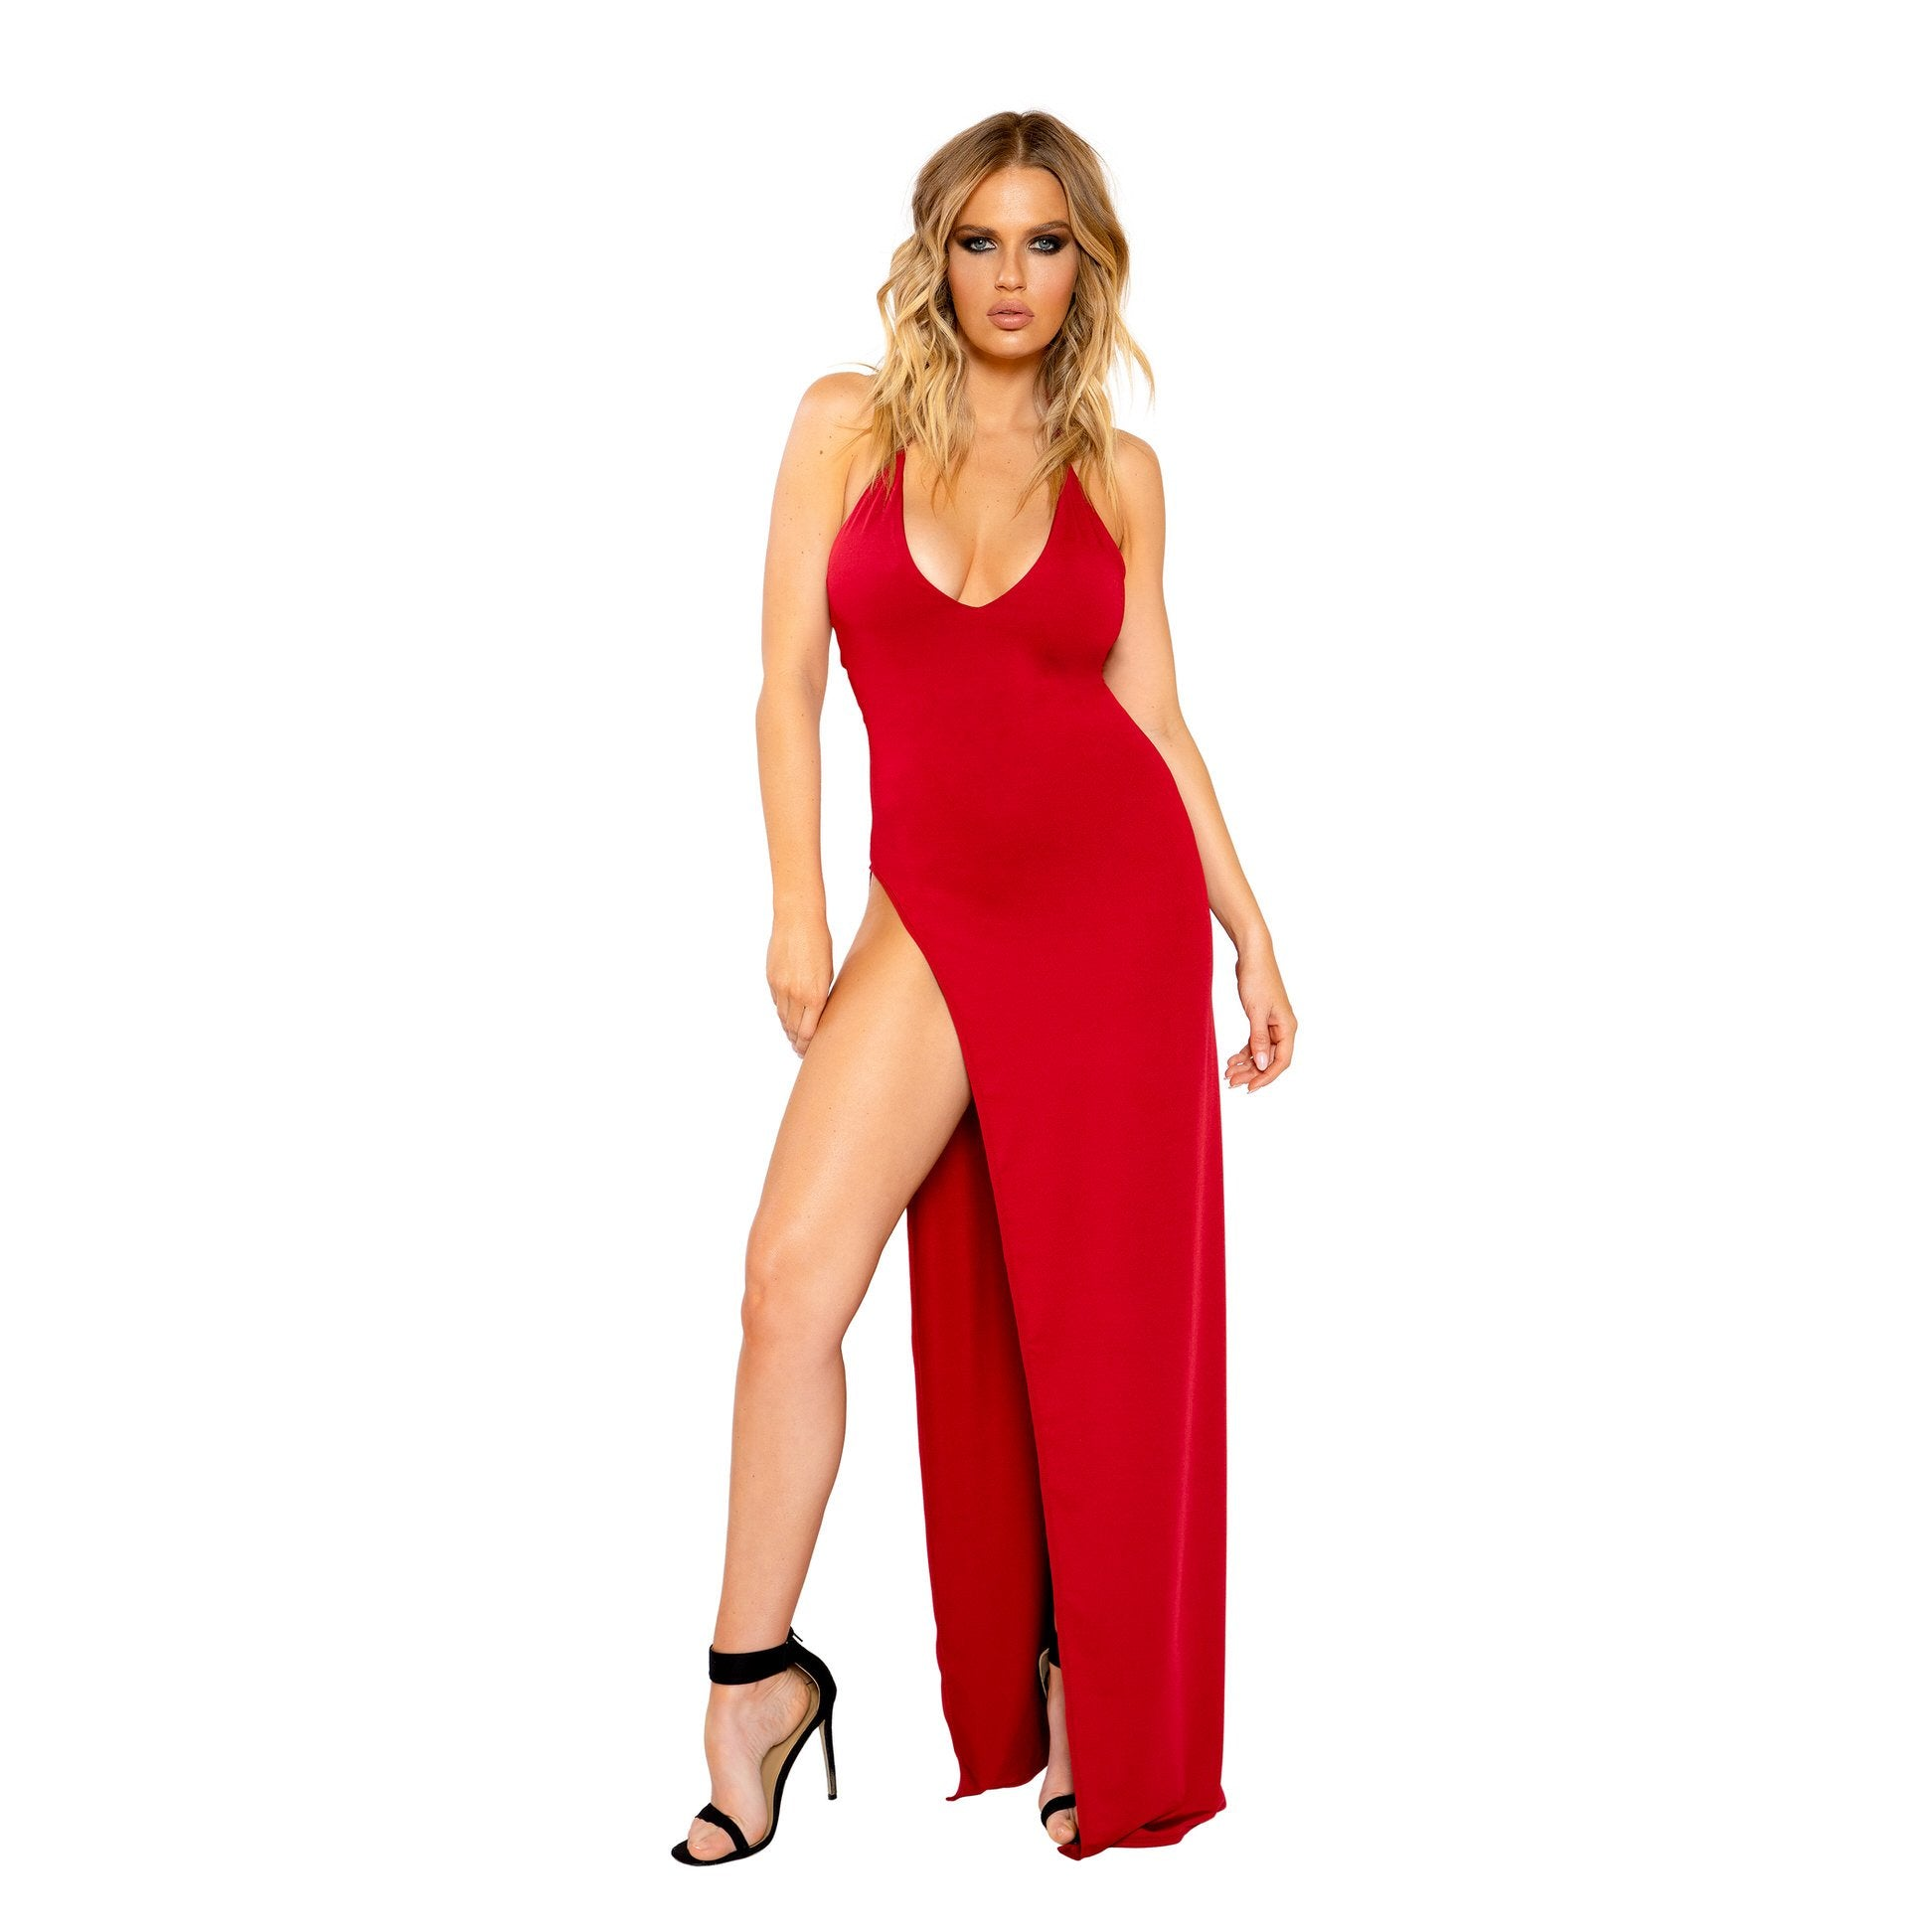 3800 - Maxi Length Dress with Deep V Detail and High Slit